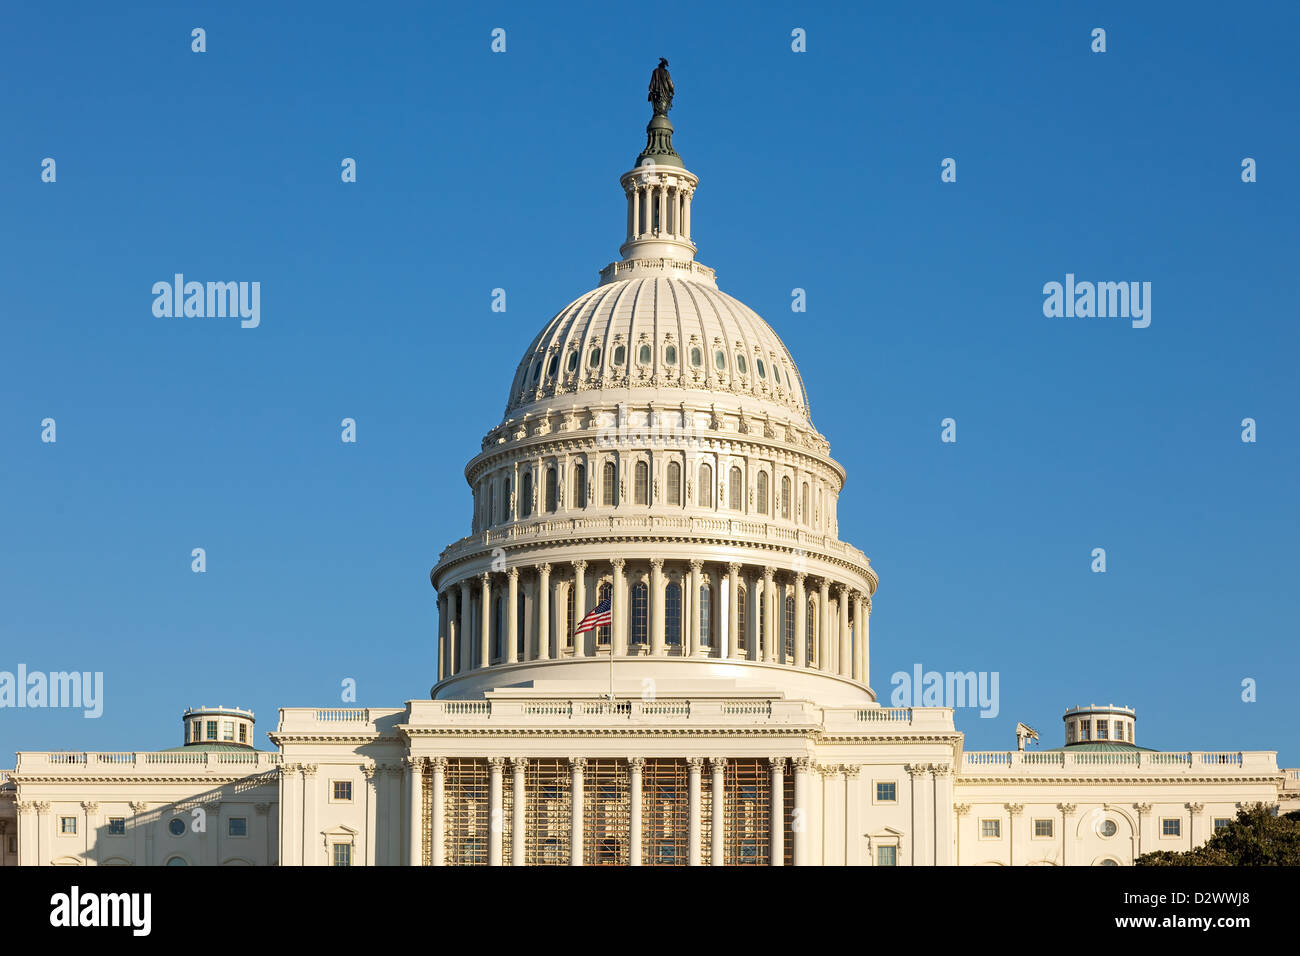 U.S. Capitol Dome Rear Face on Sunny Winter Day with Blue Sky and Copy Space - Stock Image